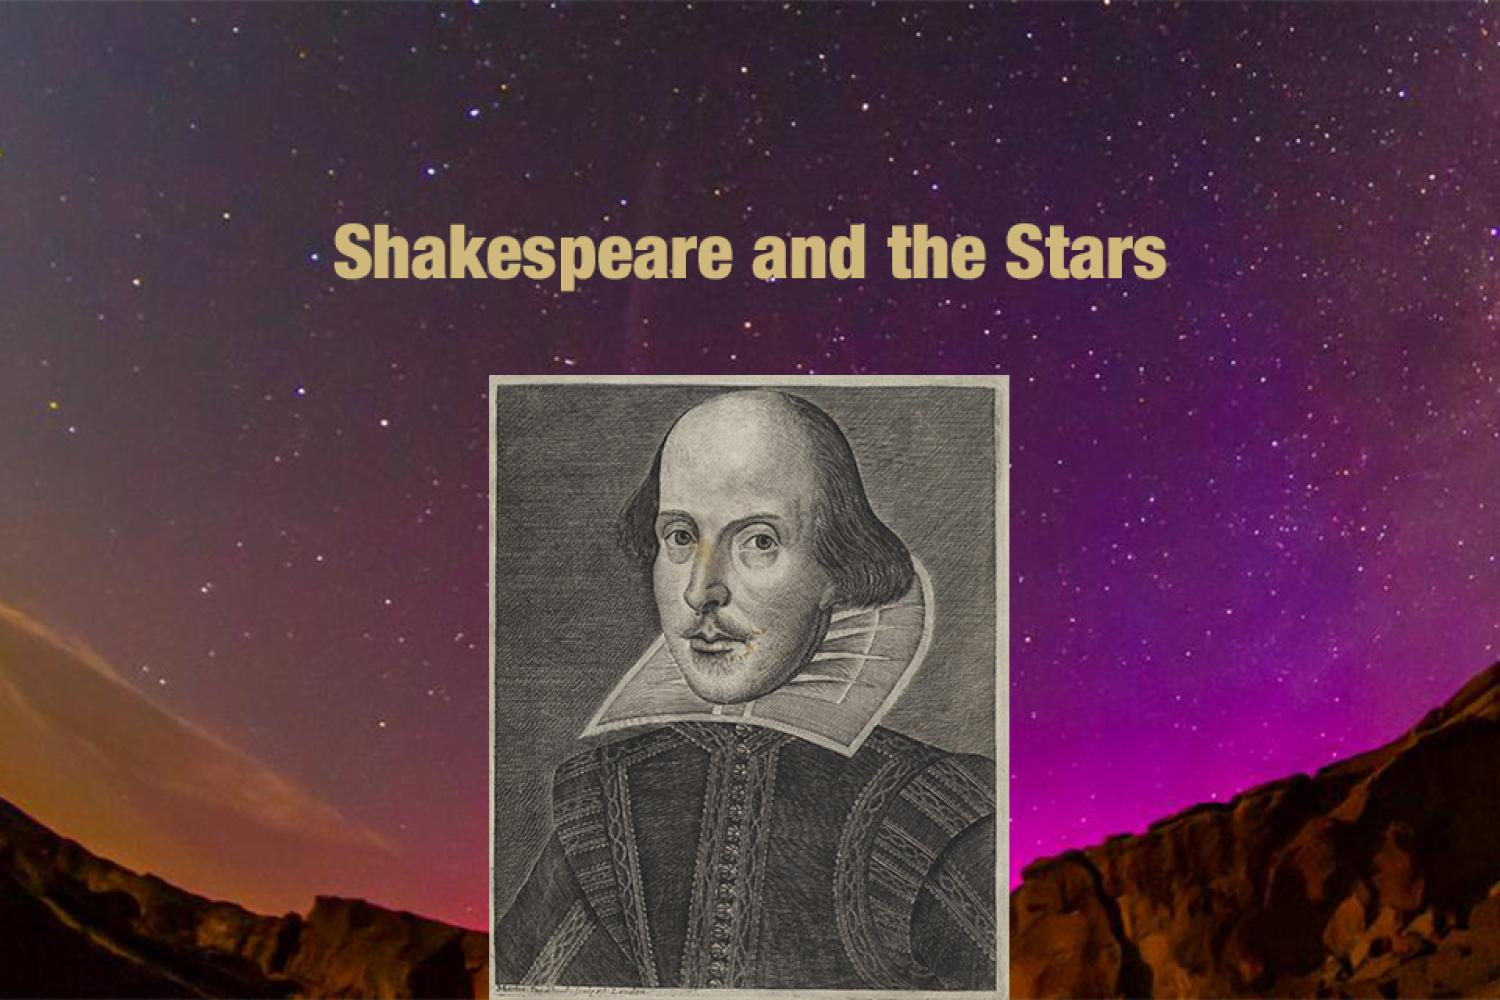 Shakespeare and the Stars is Thursday!